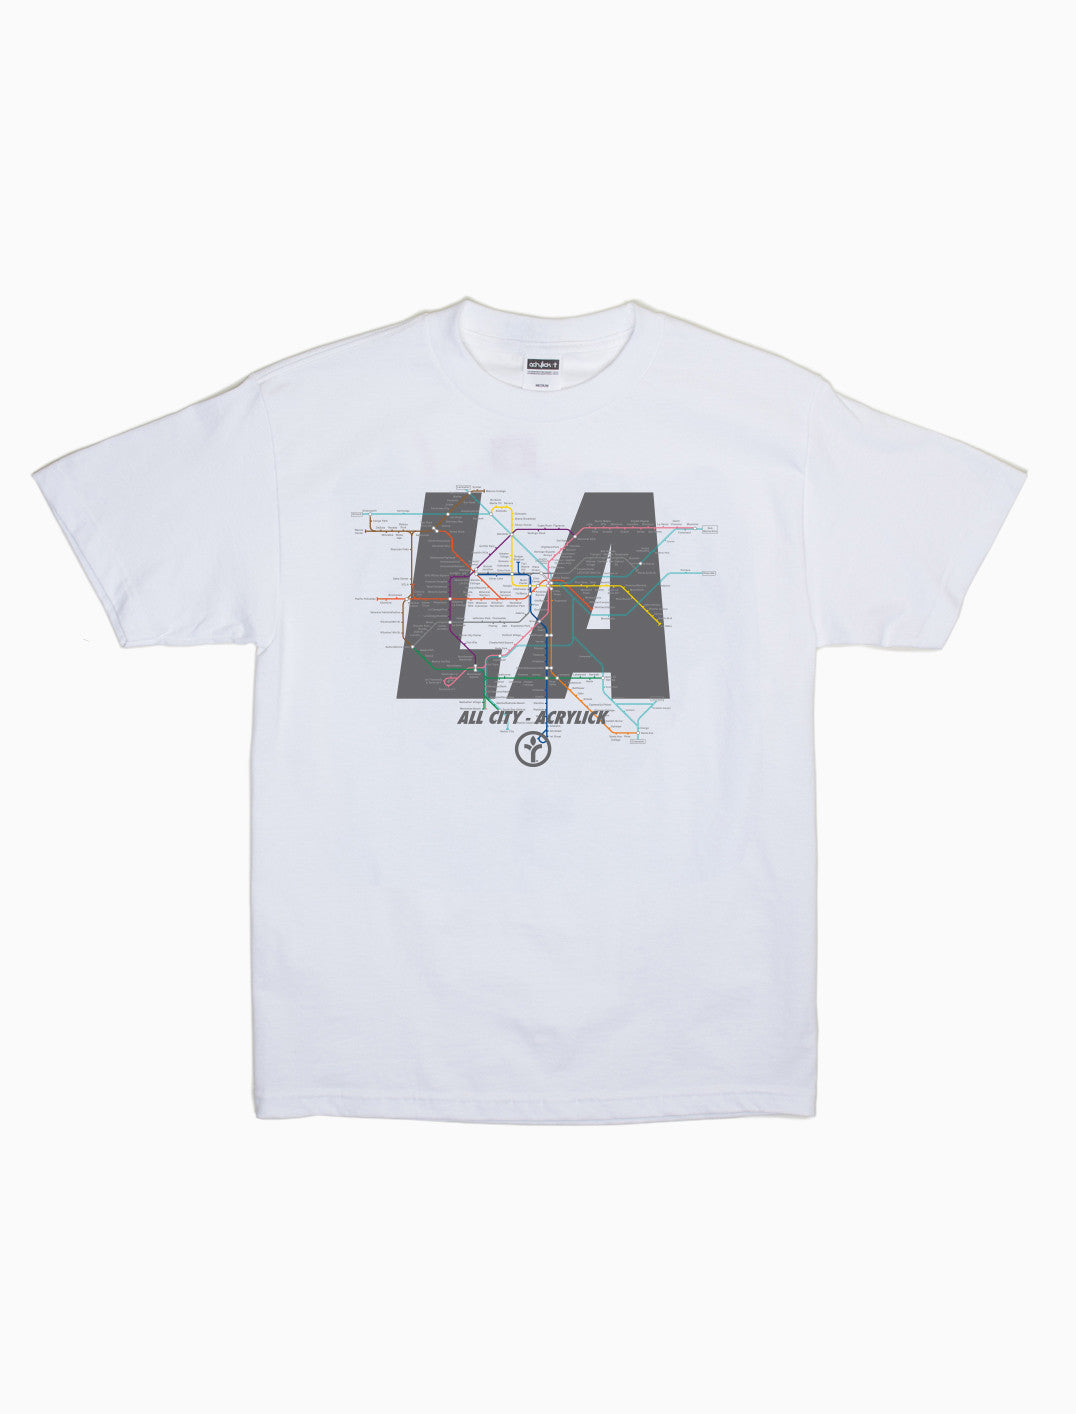 Acrylick - All City - Los Angeles - Tee